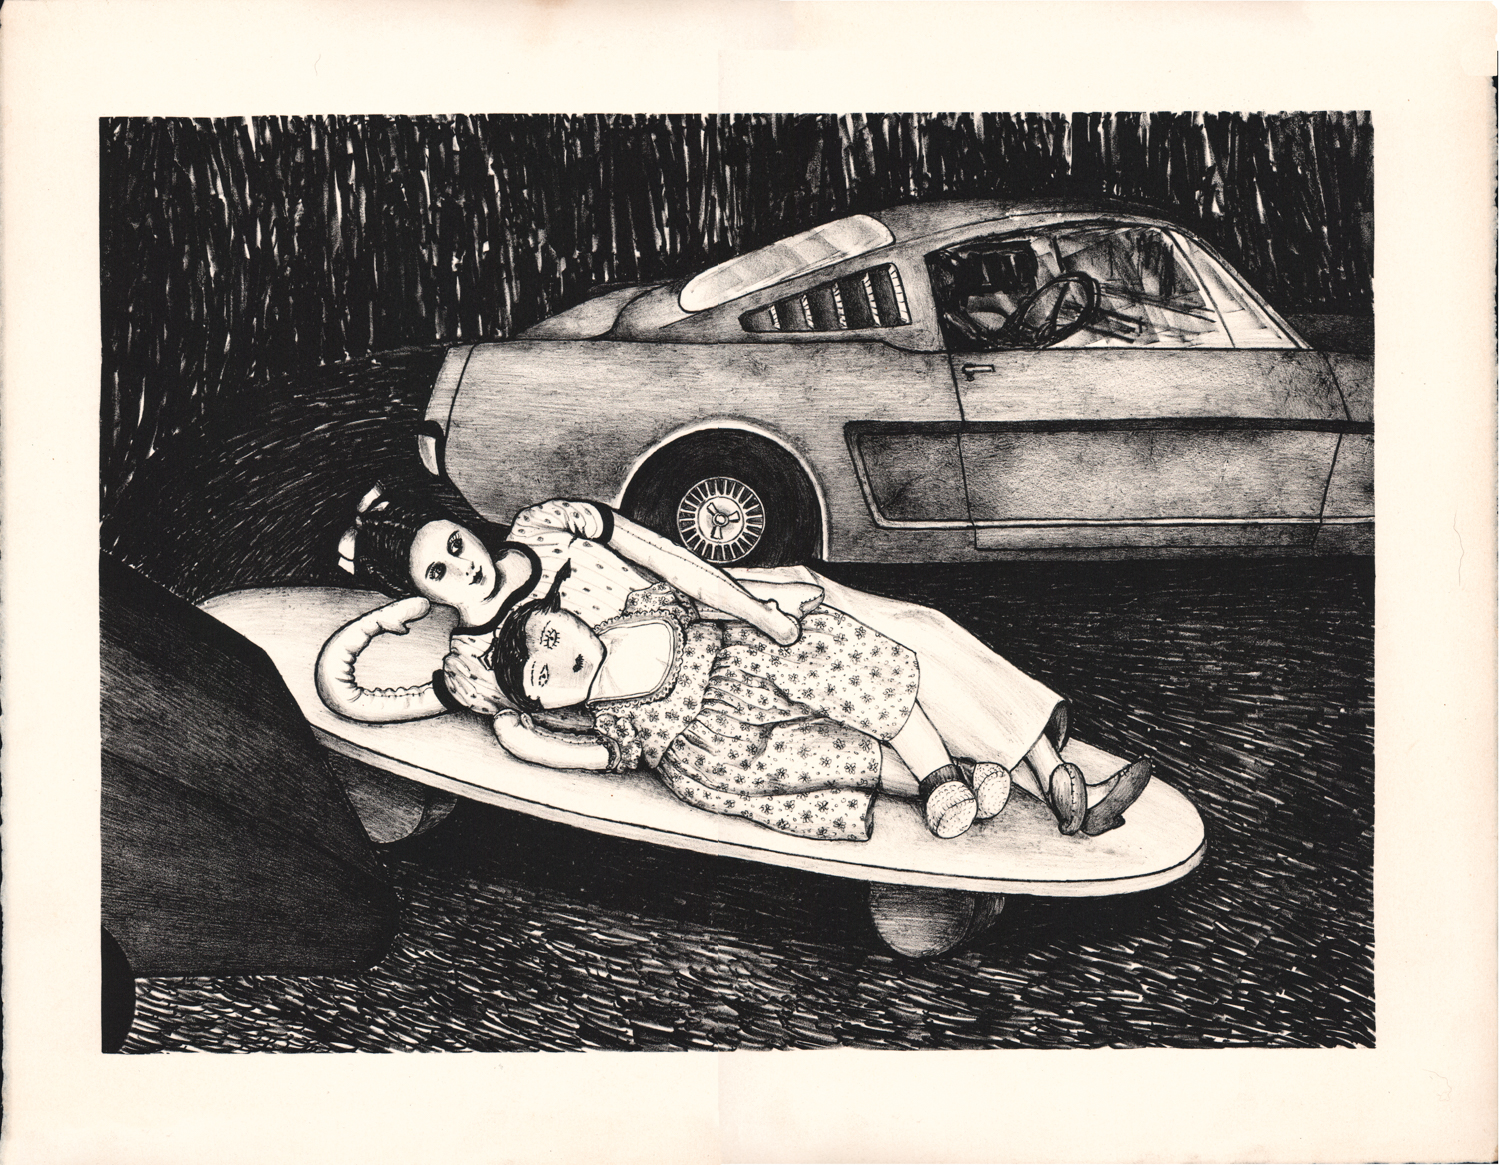 Untitled (Dolls with Mustang) - Lighograph or serigraph - 17.5